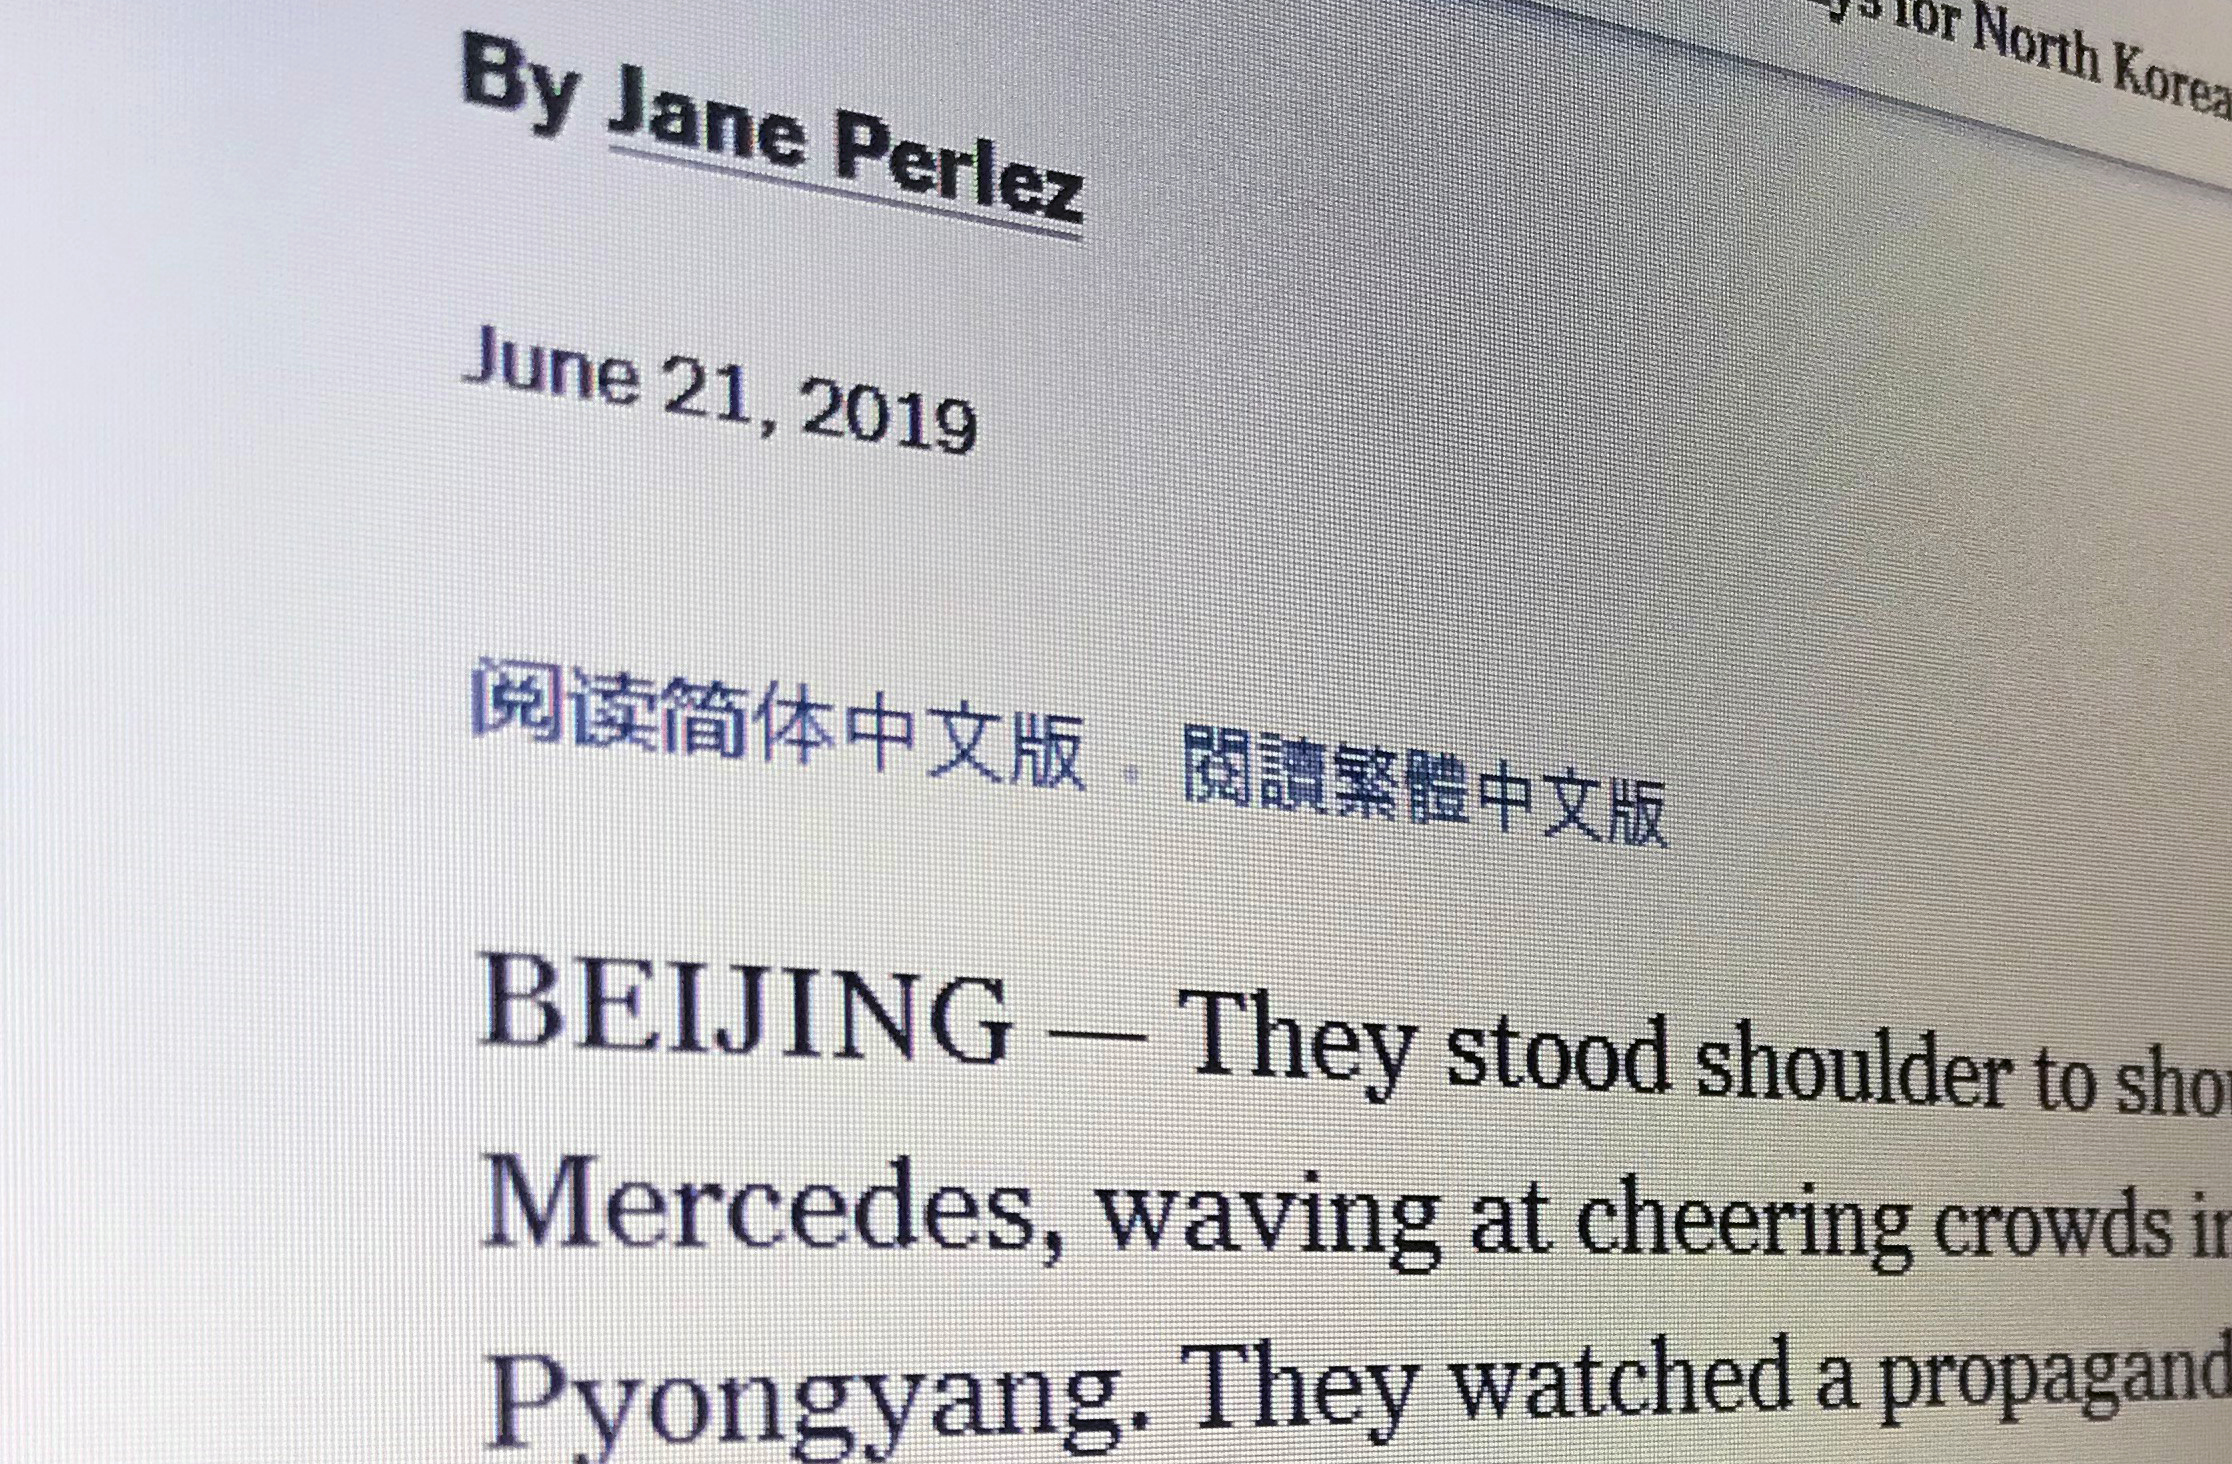 Covering China for the New York Times: 11 questions with Jane Perlez